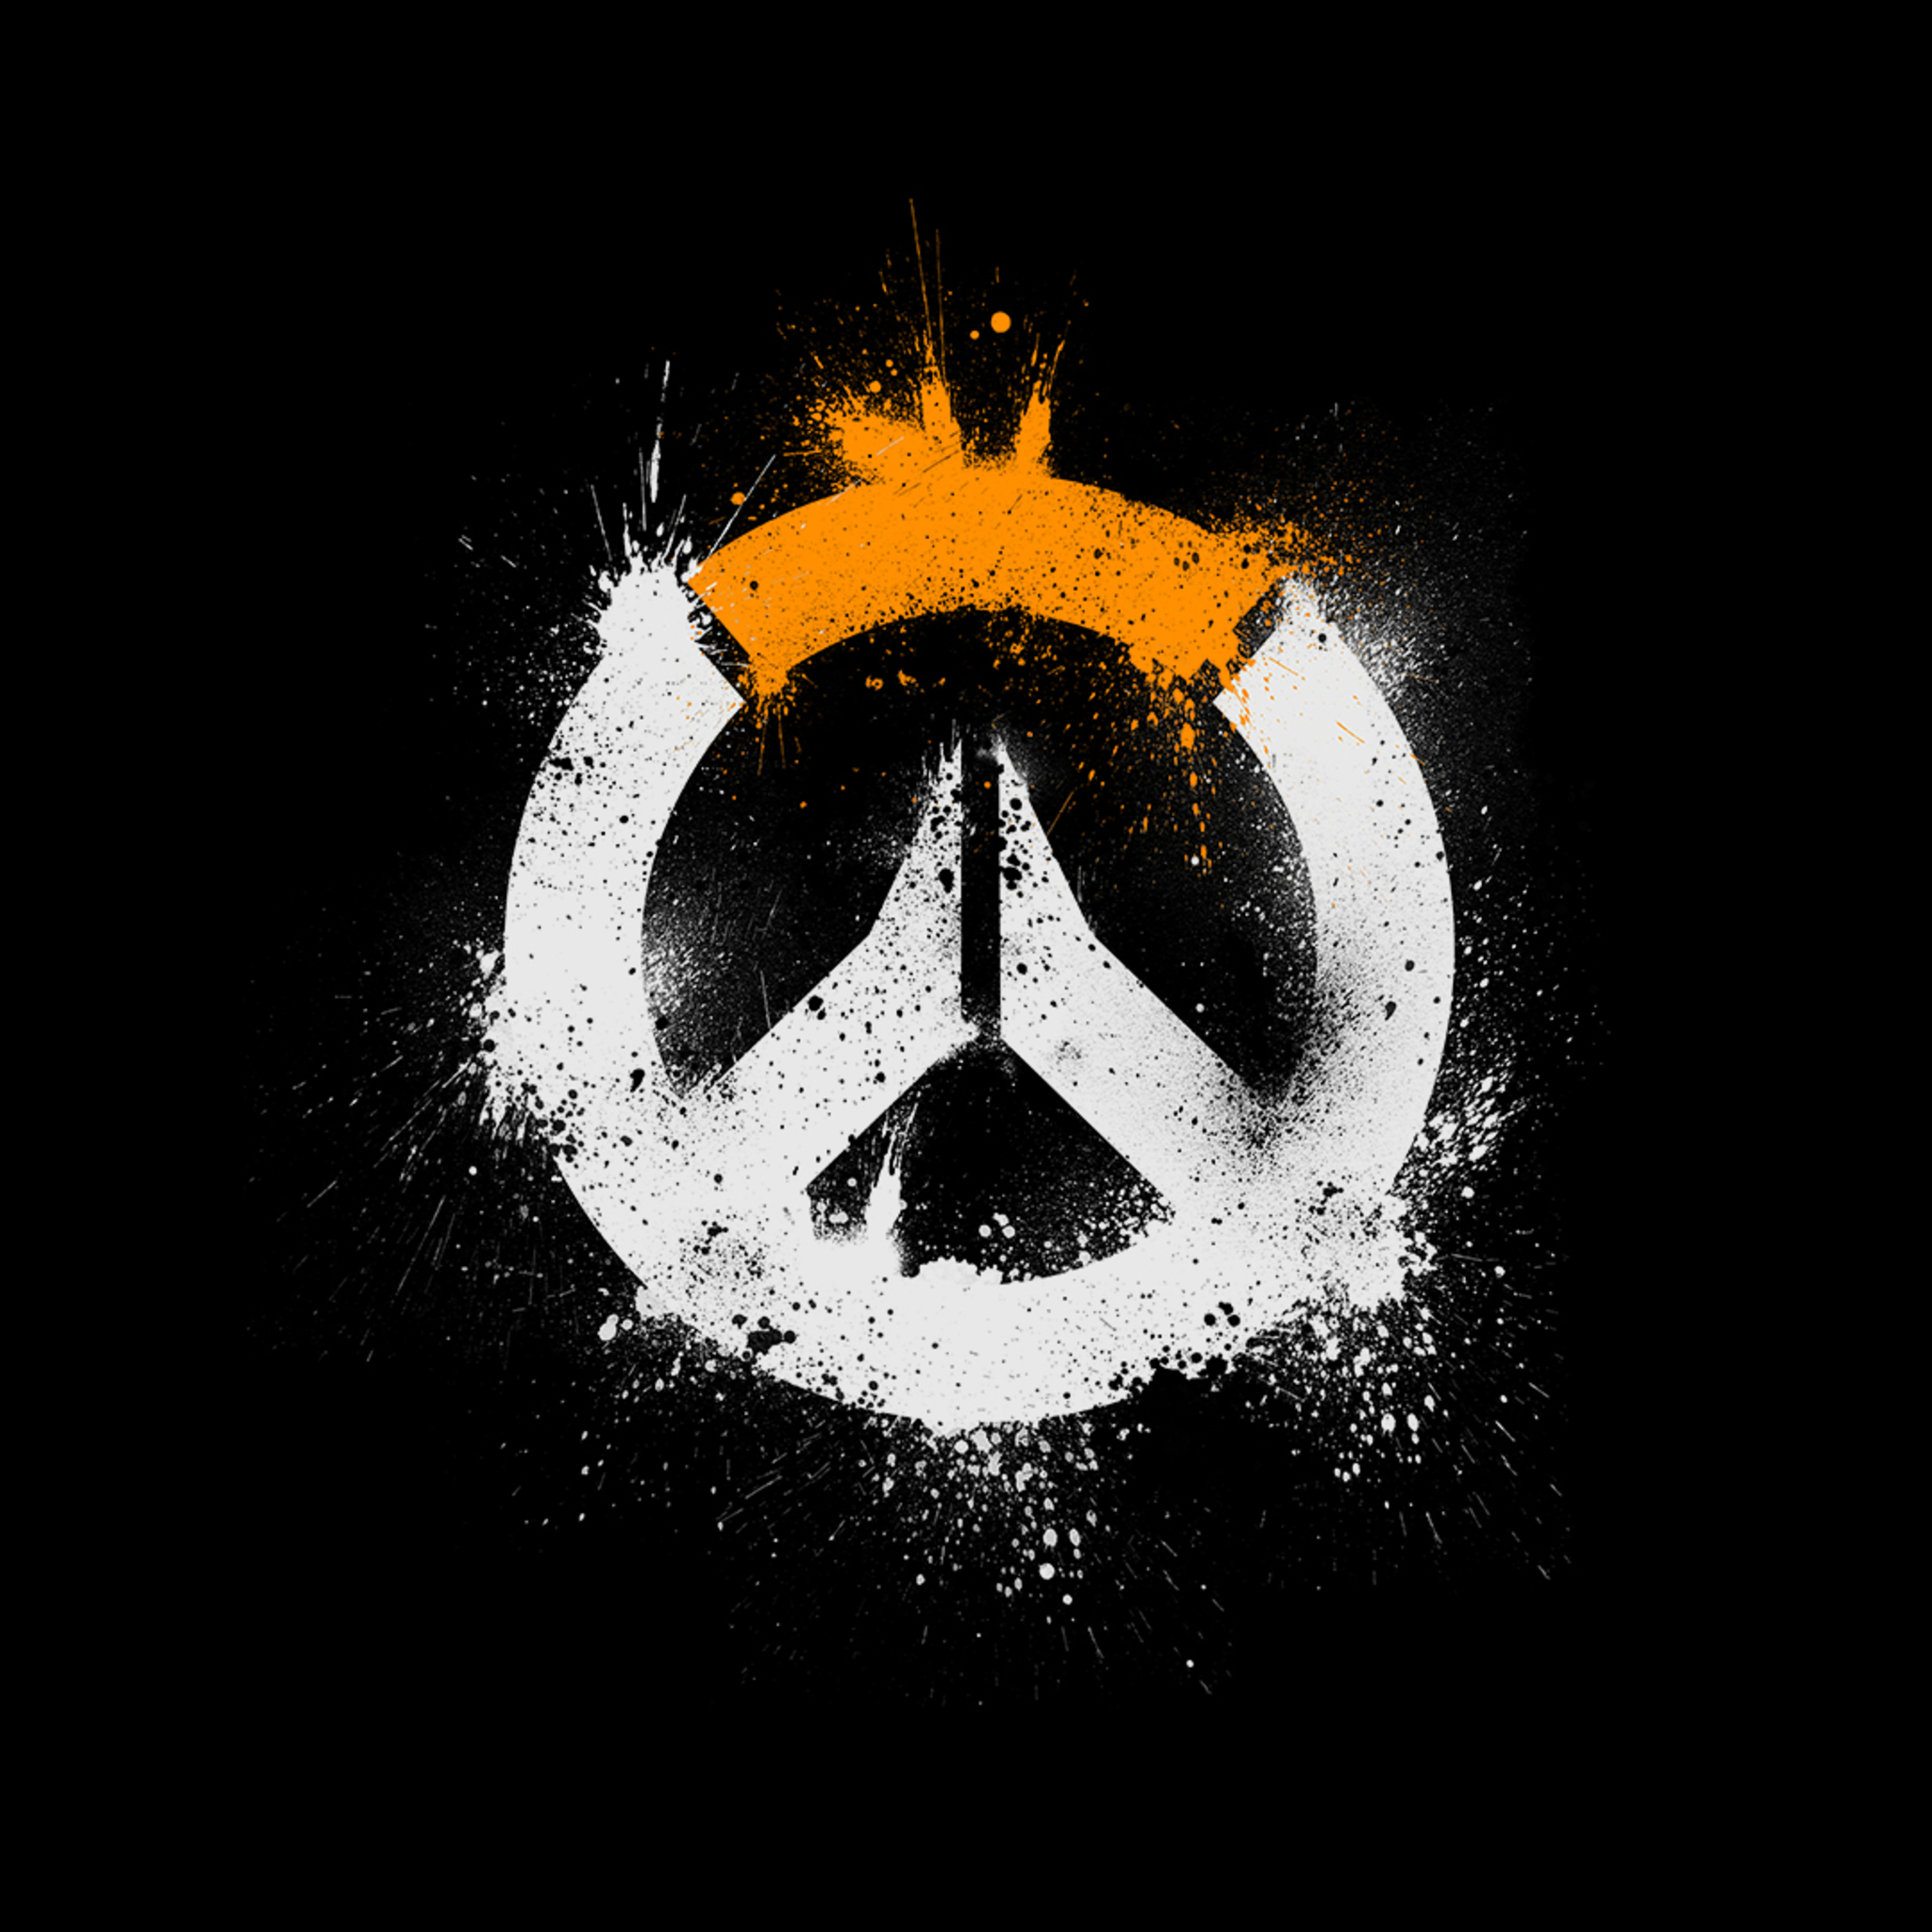 Hd 1600x900 Wallpaper: 2048x2048 Overwatch Logo HD Ipad Air HD 4k Wallpapers